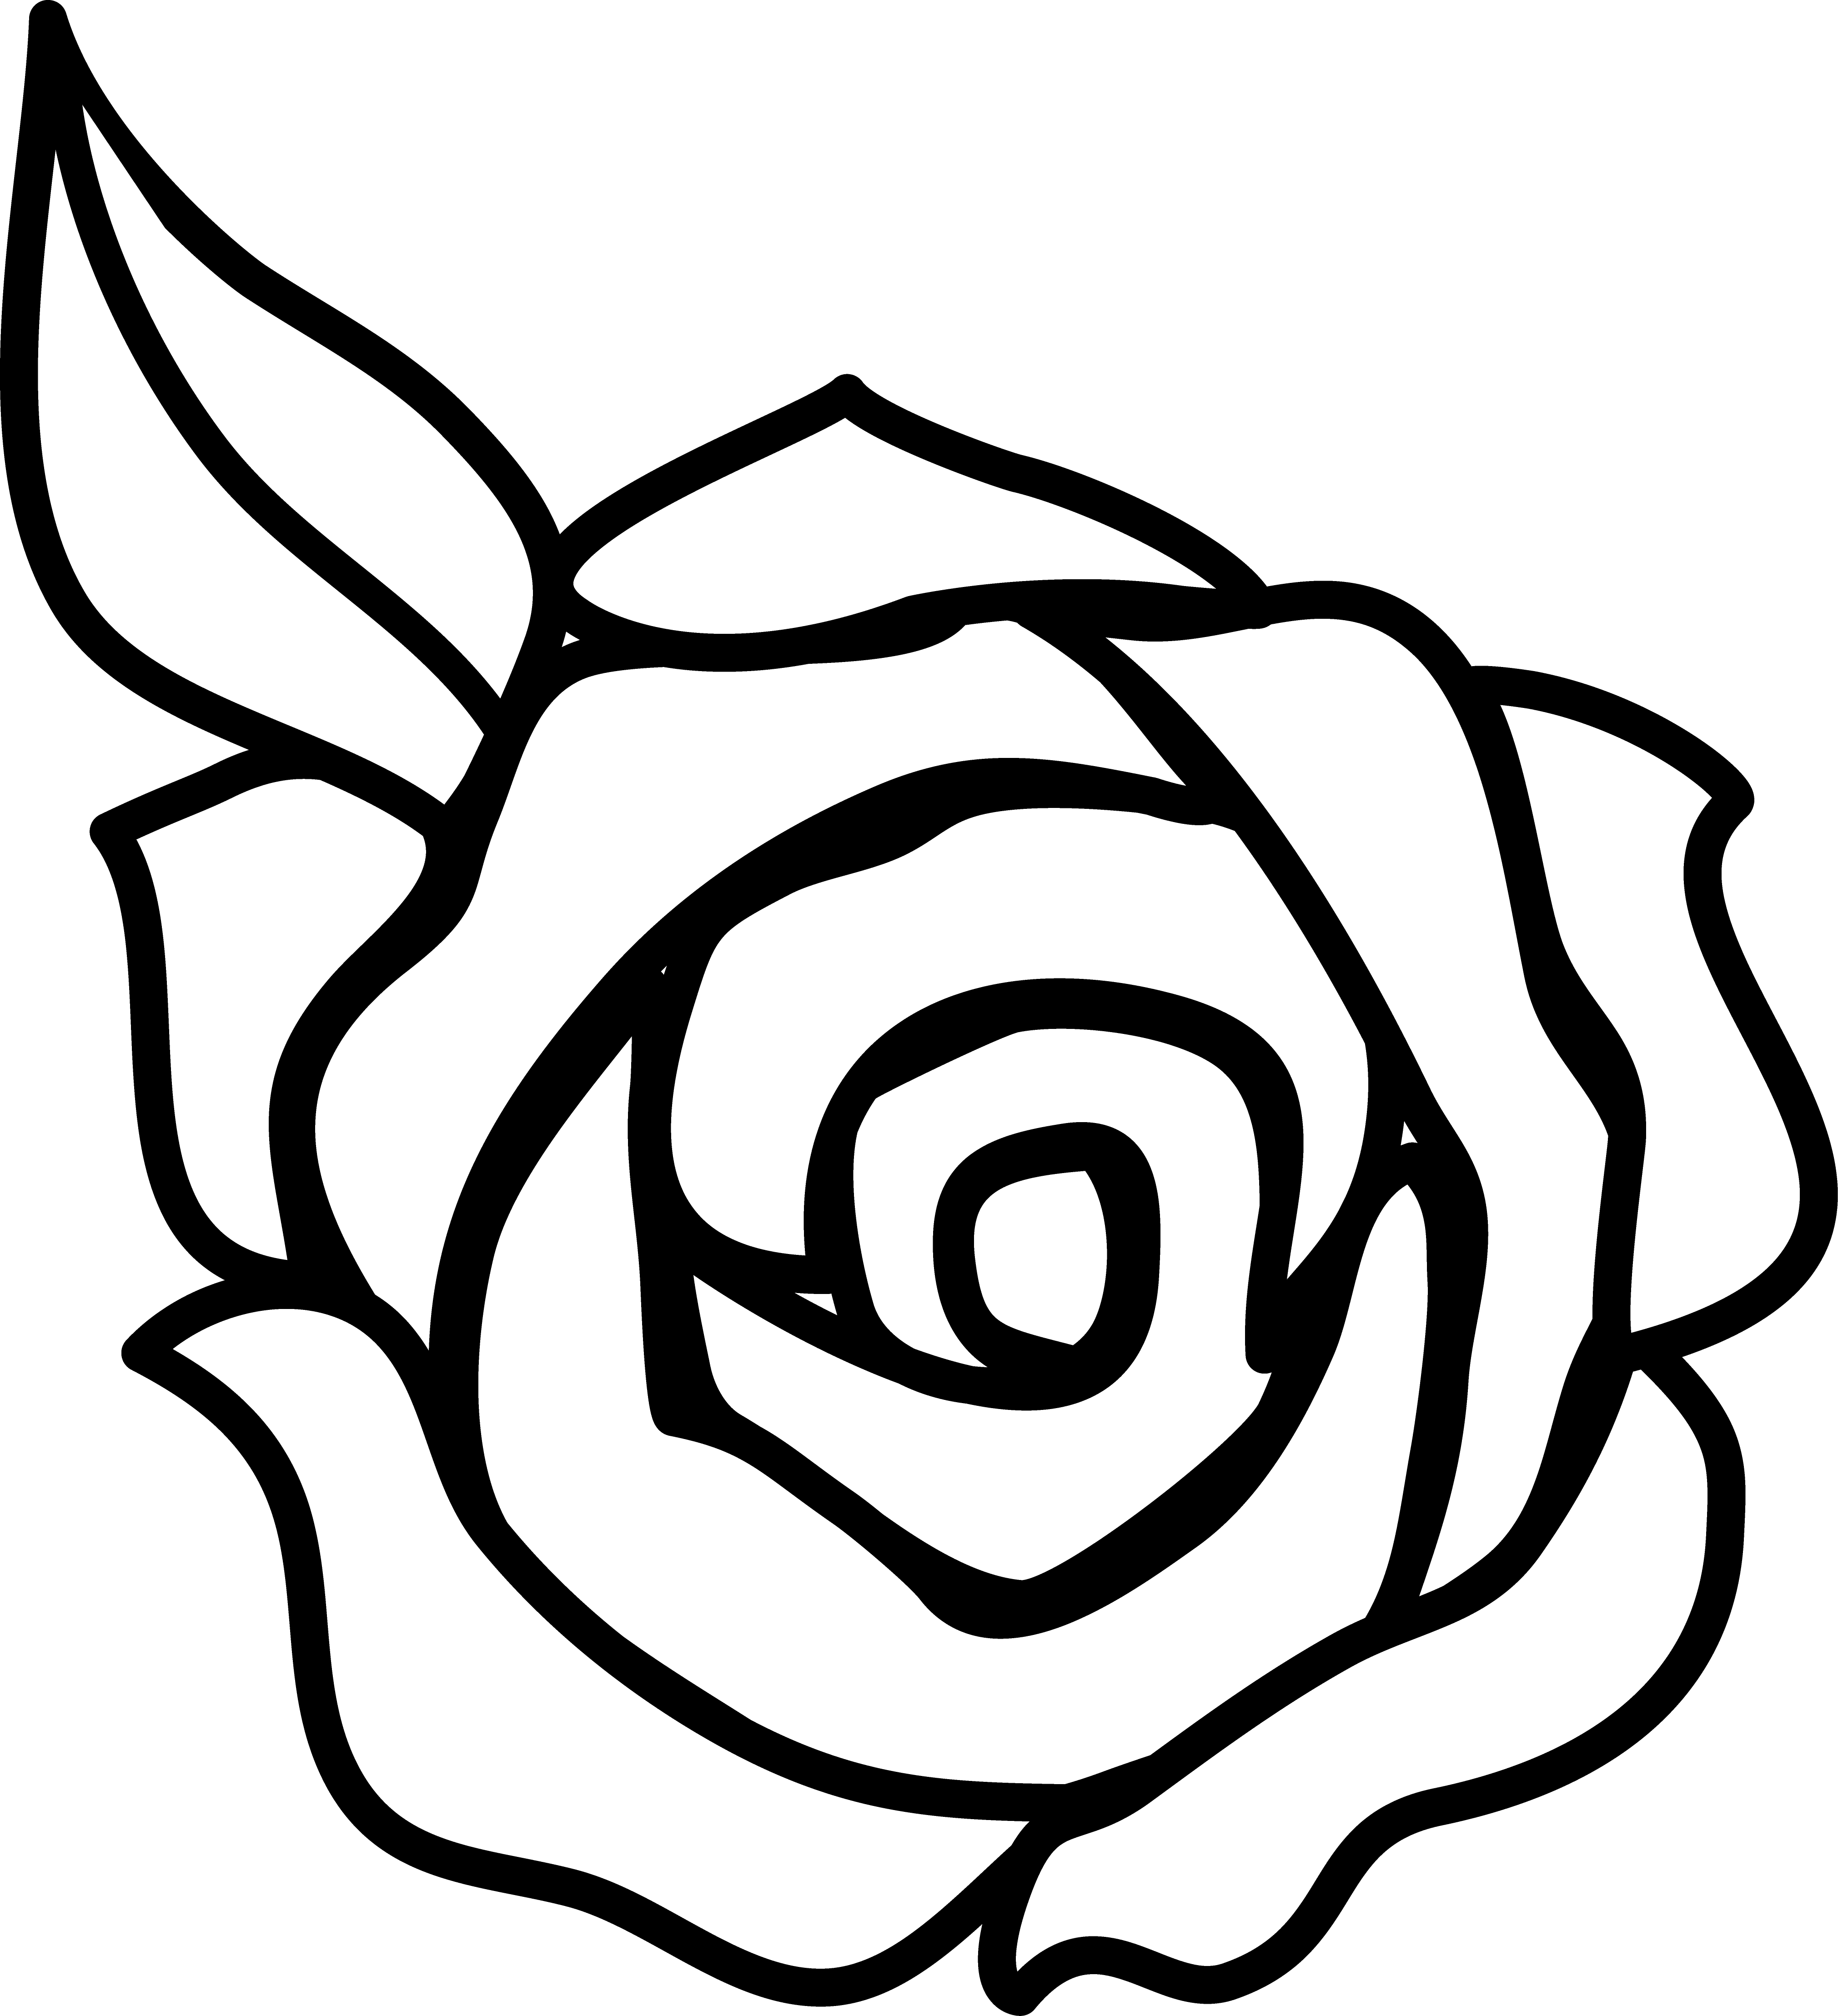 White Rose Clipart-Clipartlook.com-4042-White Rose Clipart-Clipartlook.com-4042-0